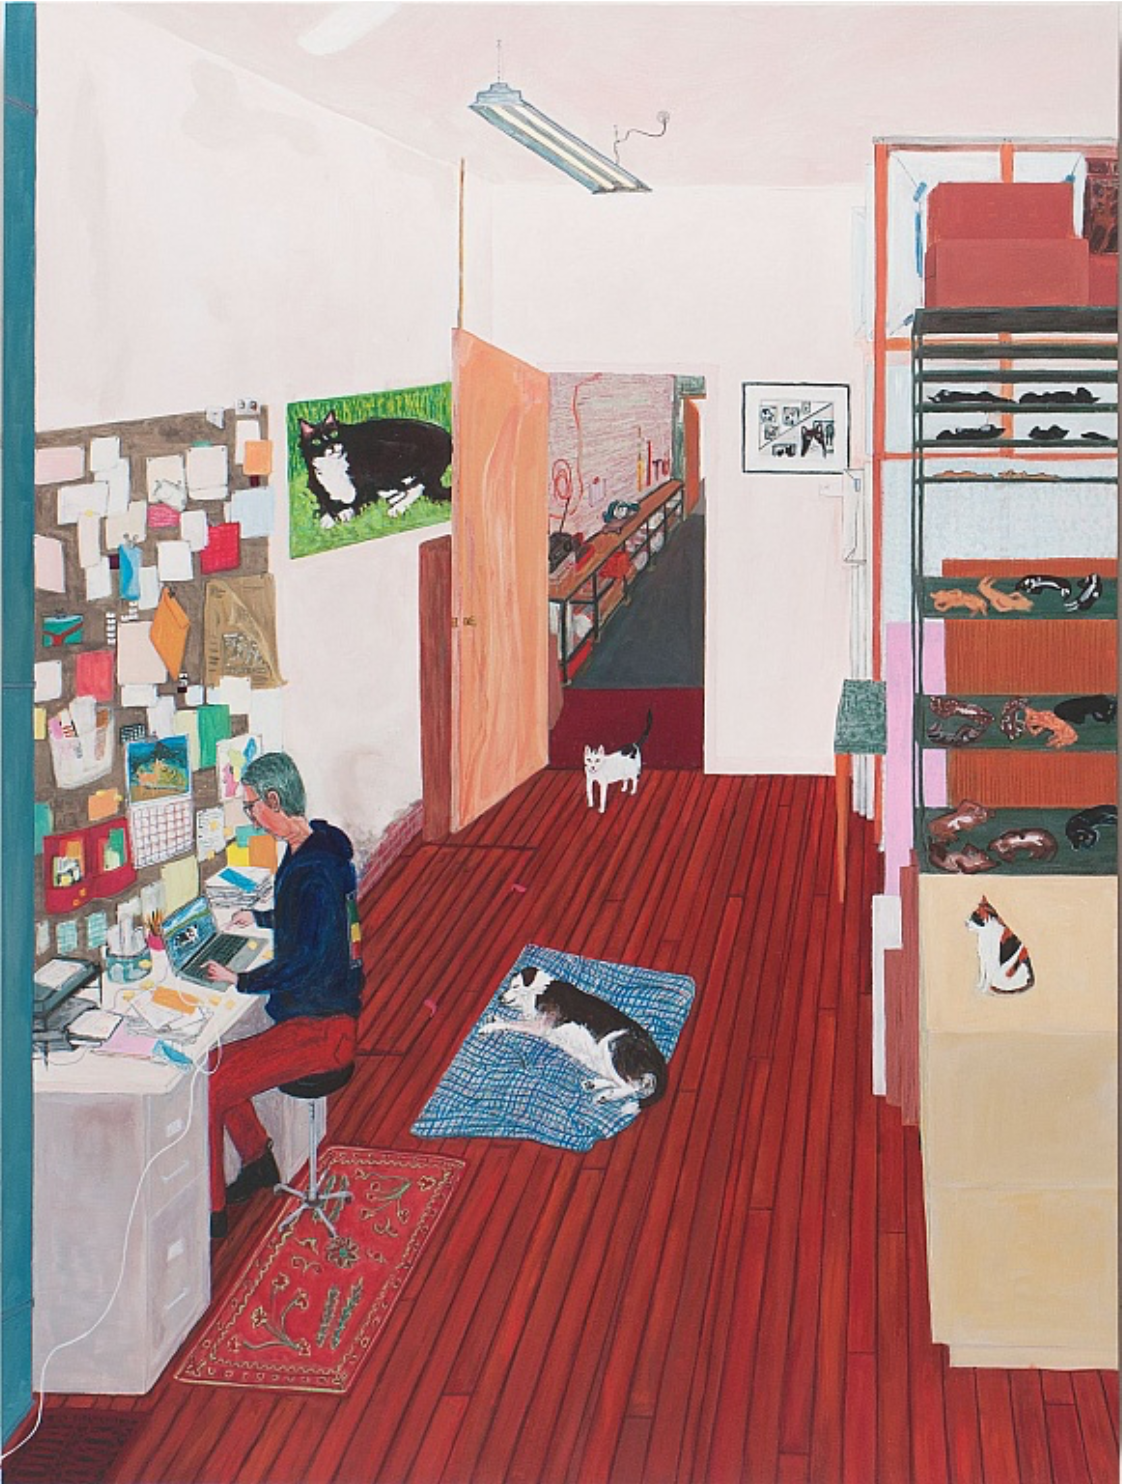 Sarah McEneaney   Office Work , 2015  acrylic on wood, 48h x 36w in